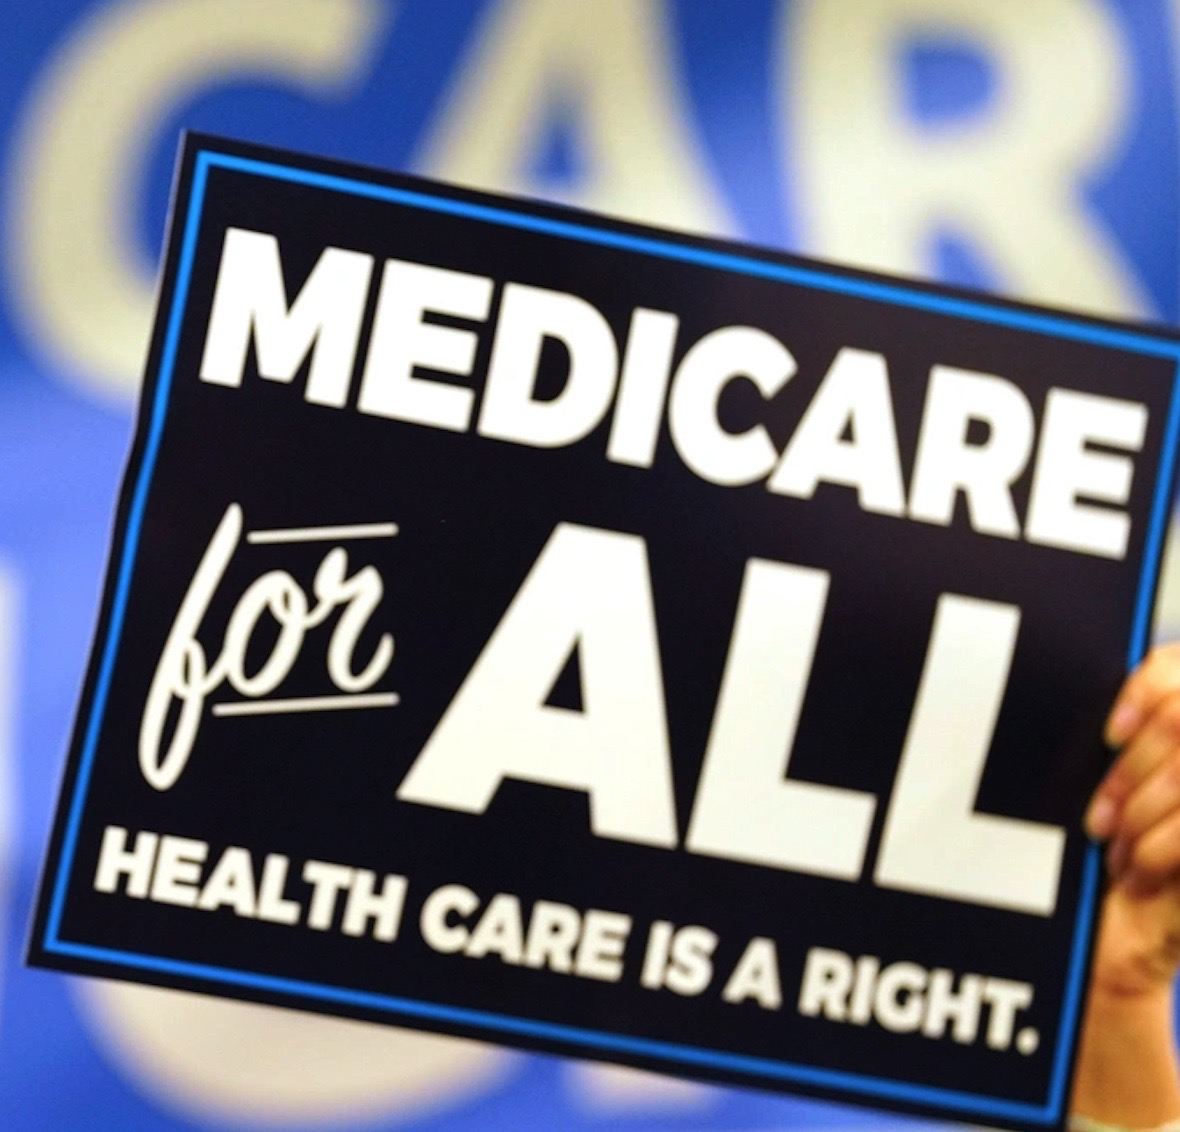 Are we heading towards Medicare for all?